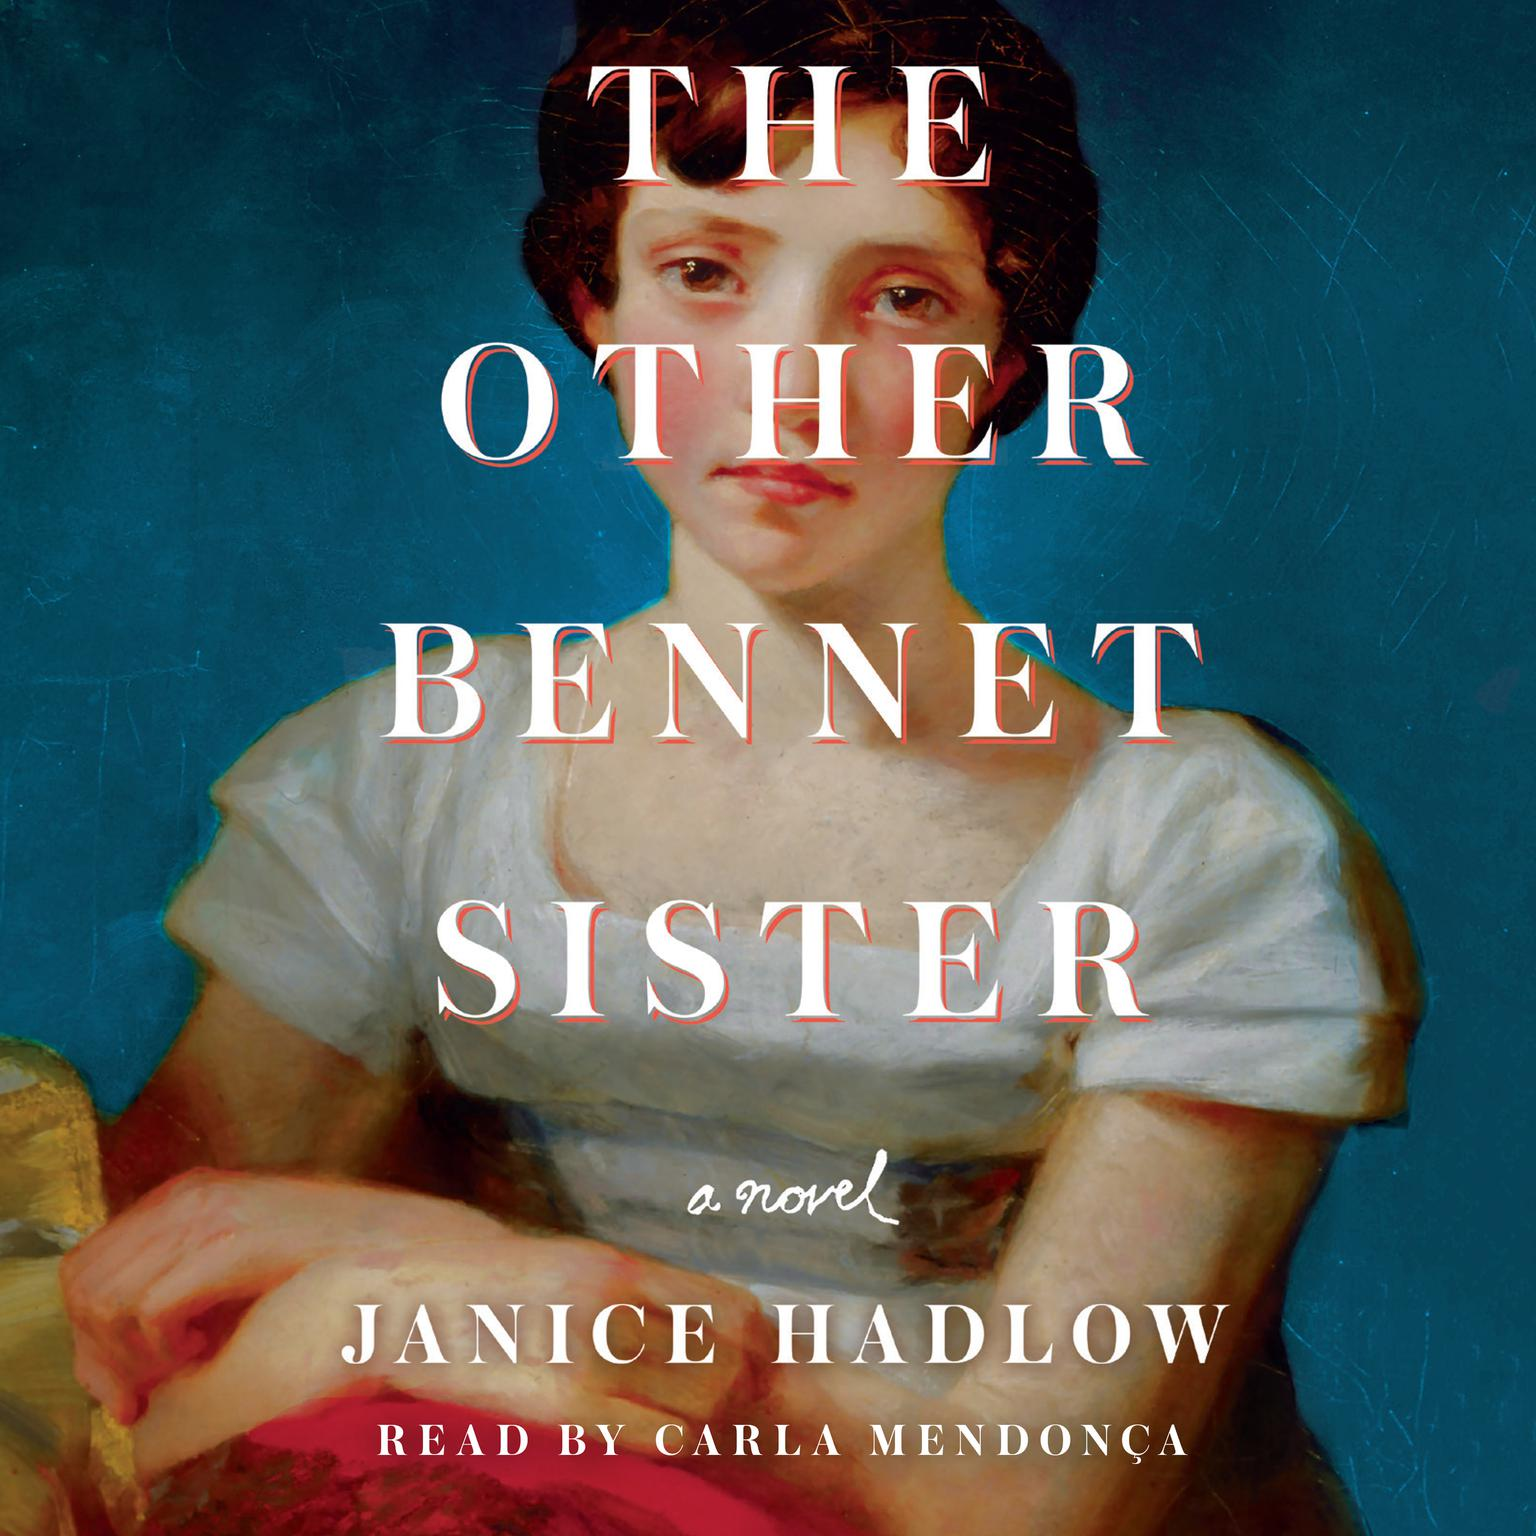 Printable The Other Bennet Sister: A Novel Audiobook Cover Art